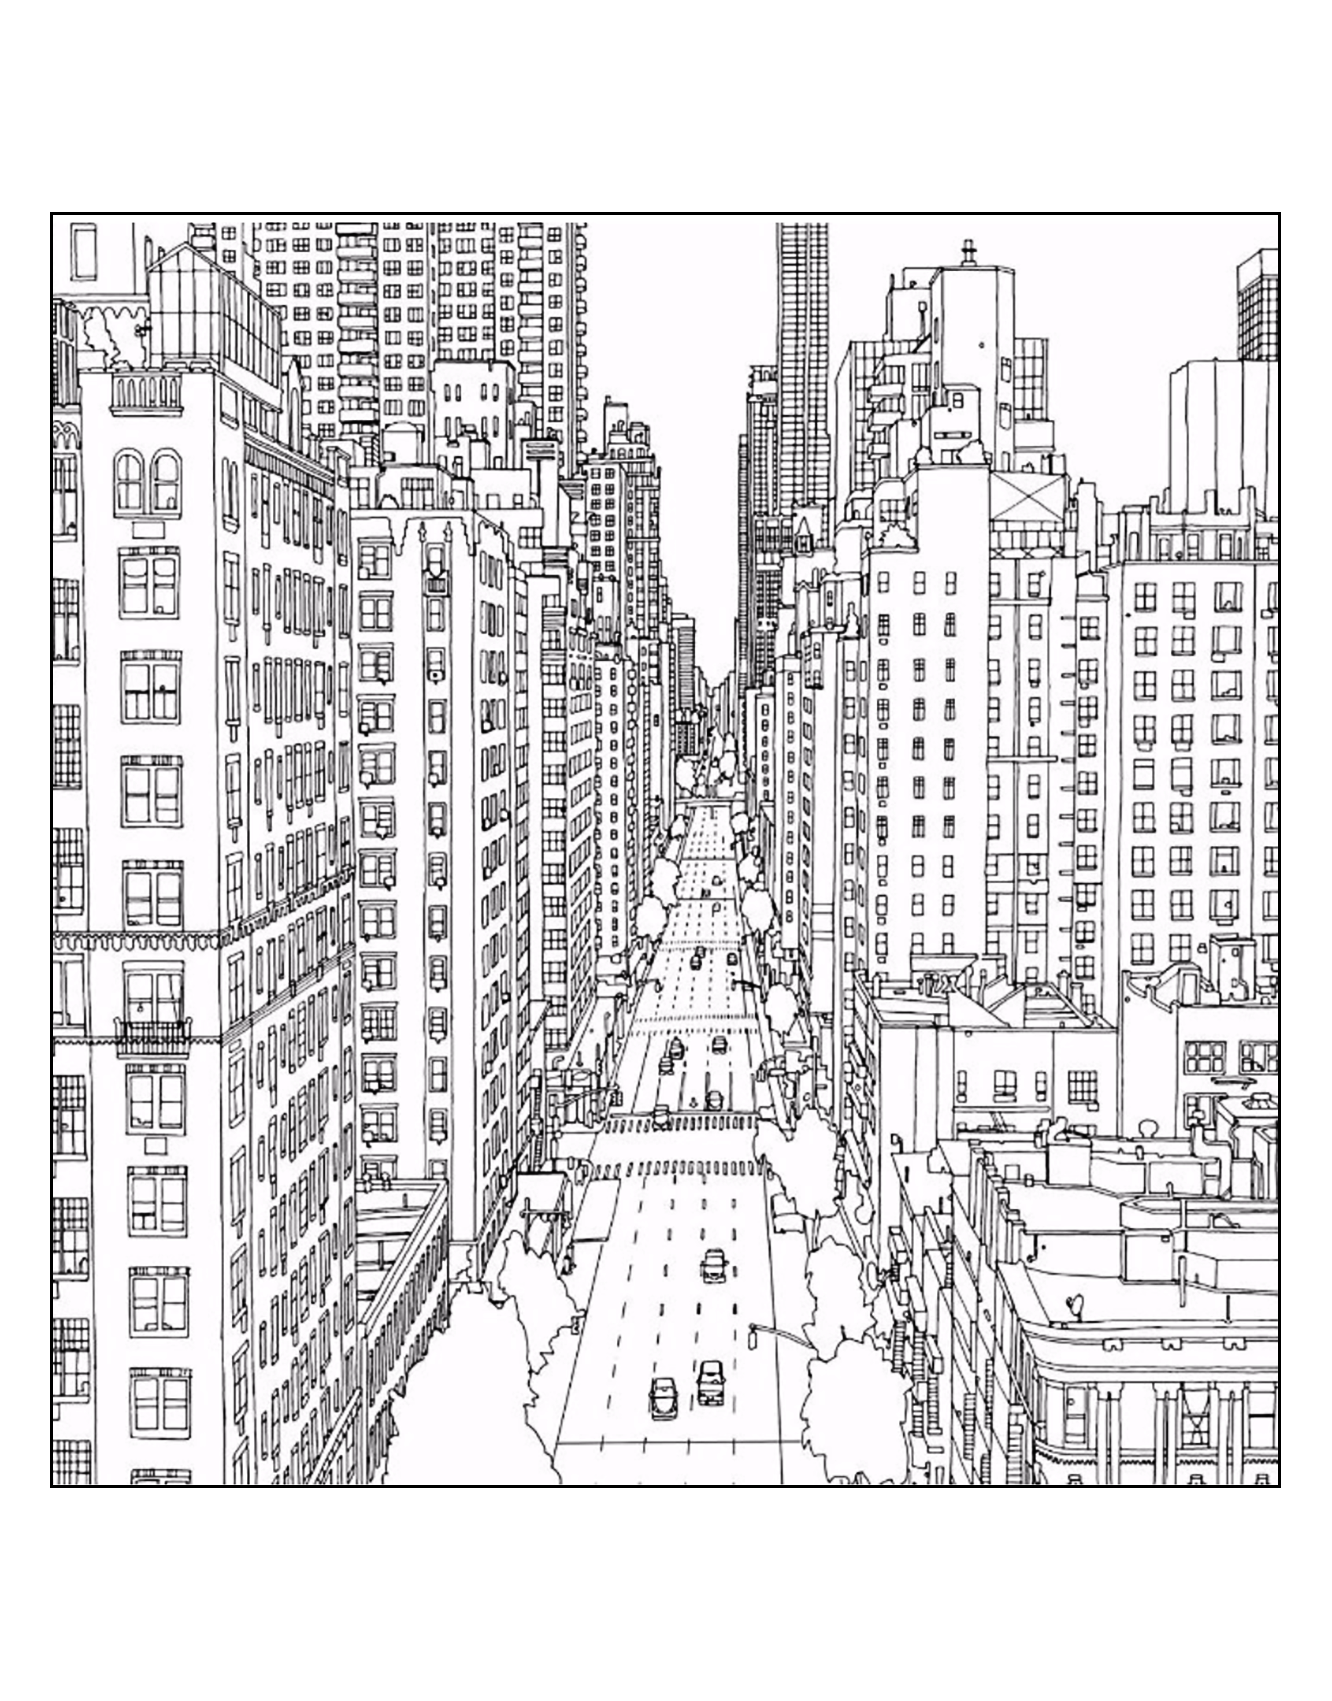 Coloring adult new york 1st avenue and east 60th street in manhattan source steve mcdonald